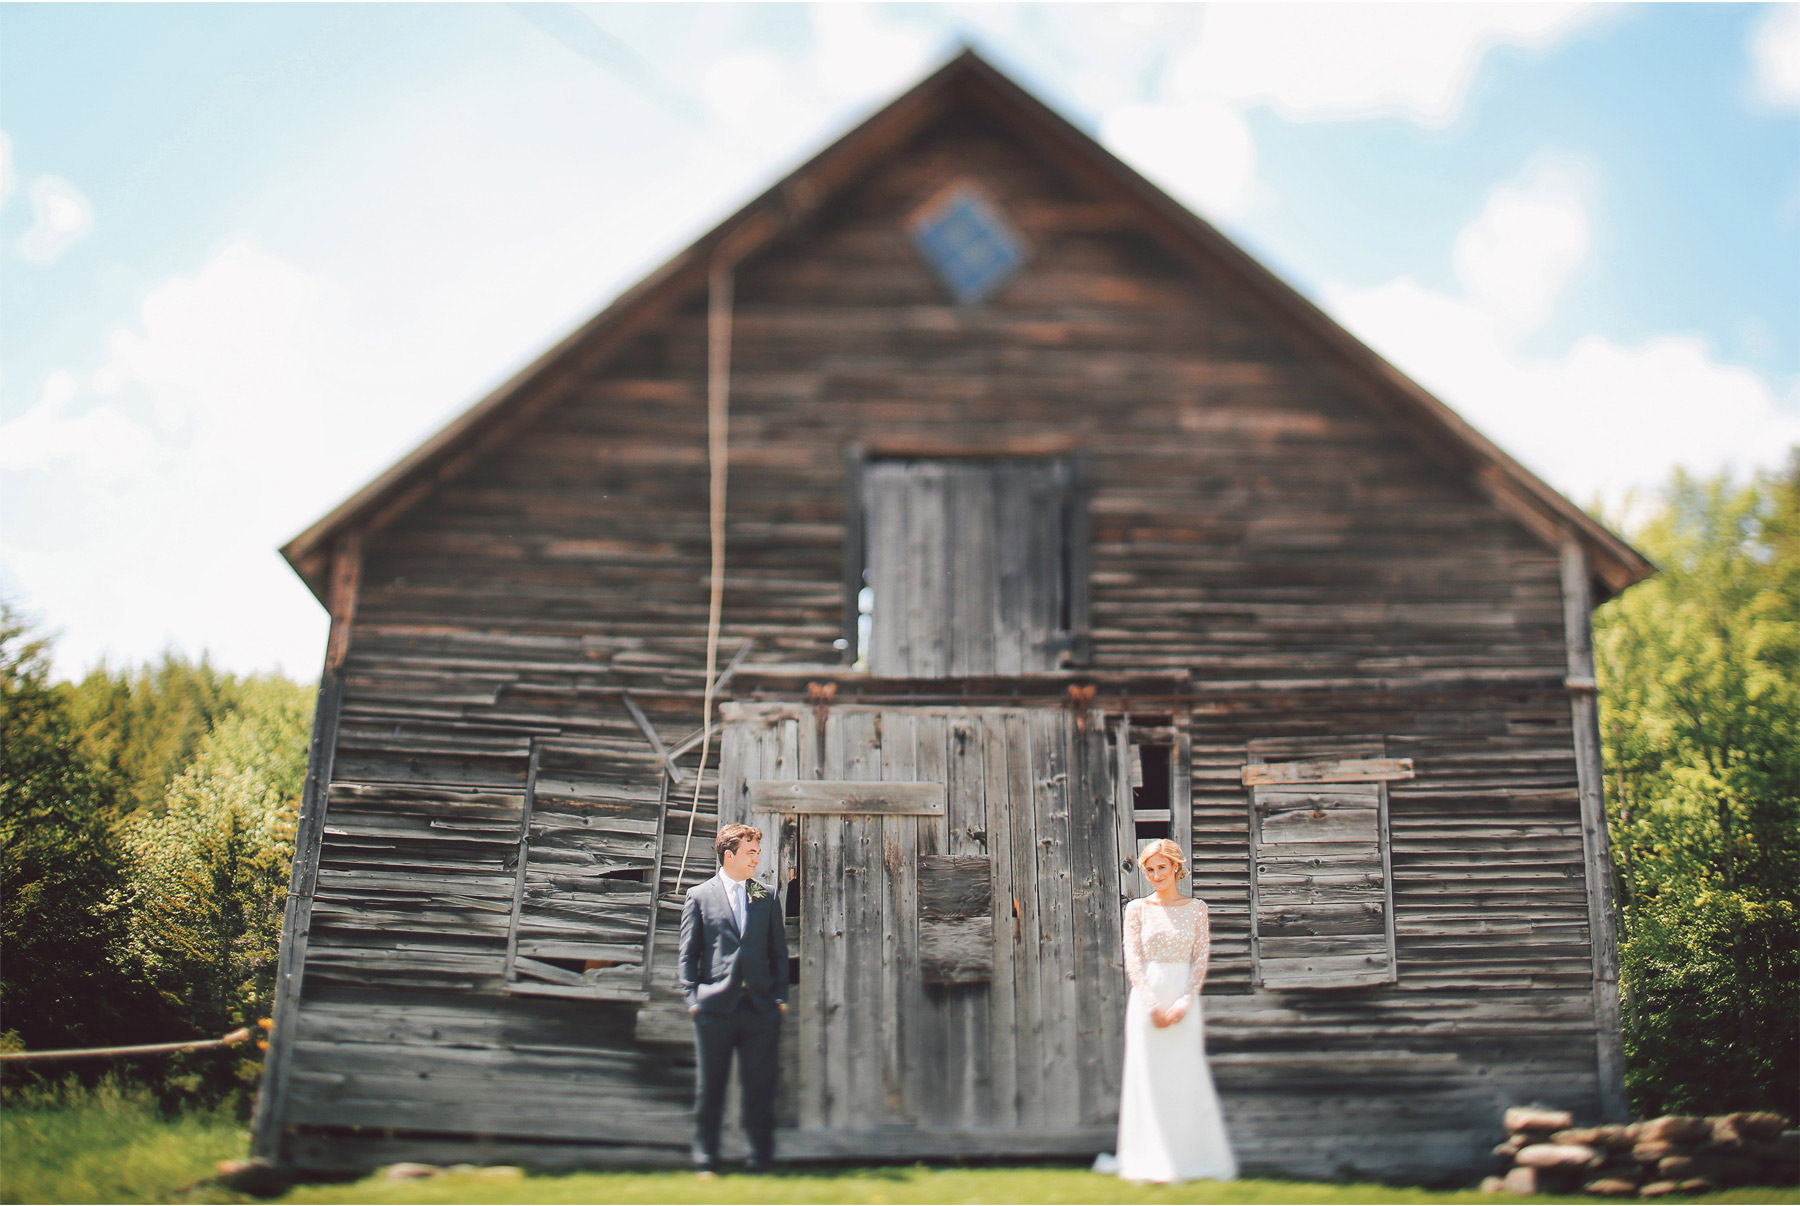 13-Stowe-Vermont-Wedding-Photography-by-Vick-Photography-Edson-Hill-Barn-Mackenzie-and-Jim.jpg